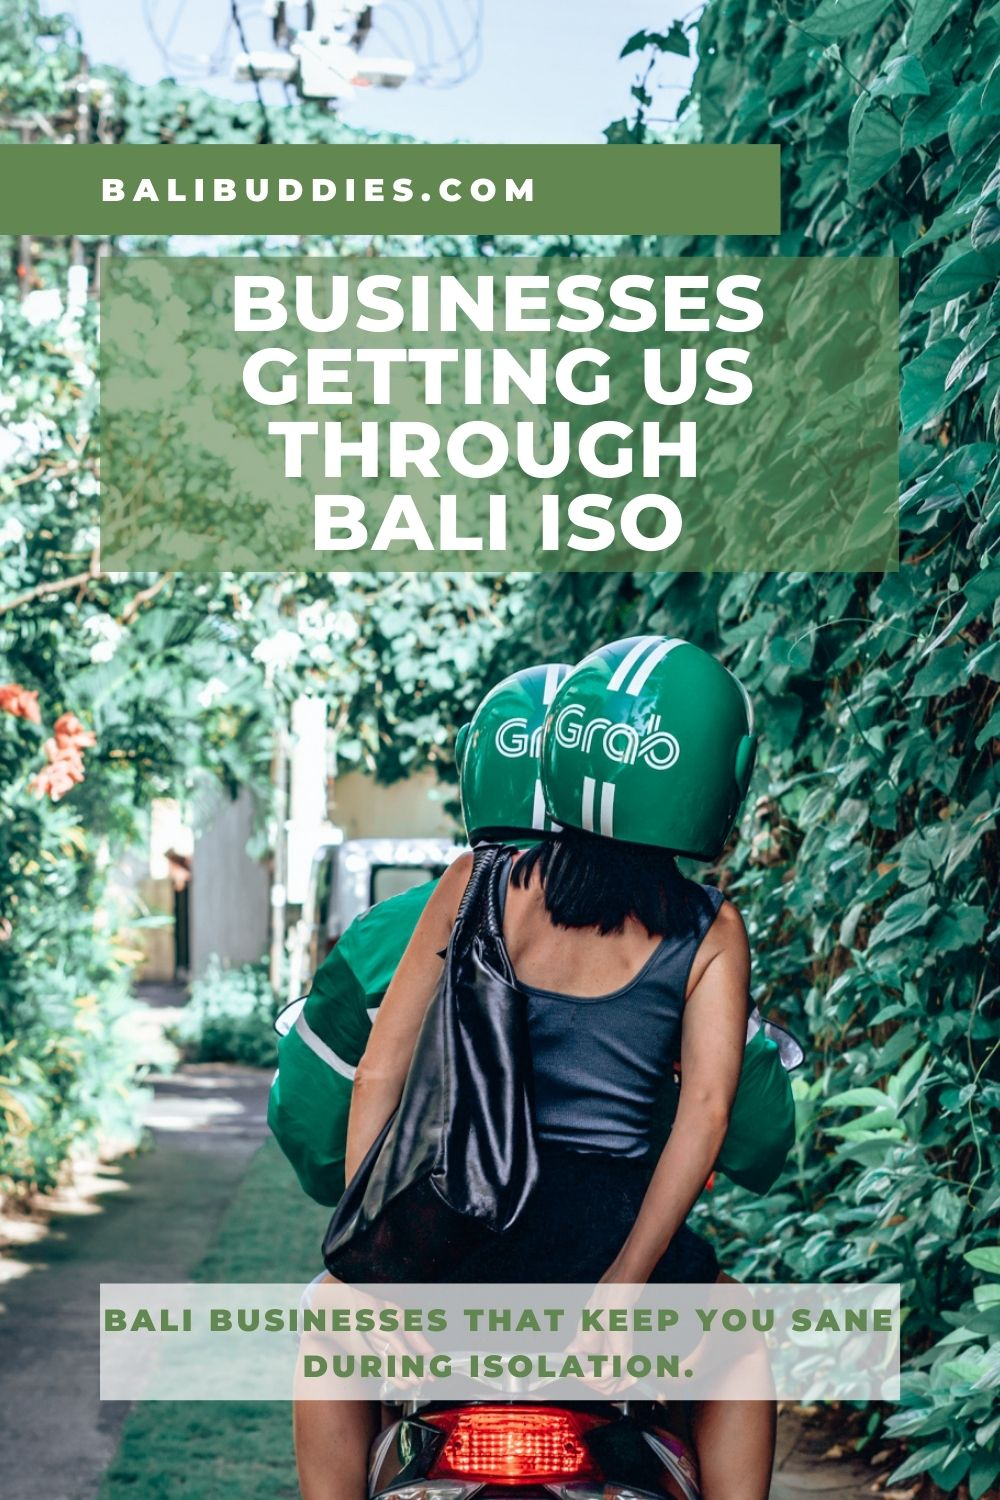 Businesses getting us through Bali ISO in 2021 - Grab App - Blog by Bali Buddies